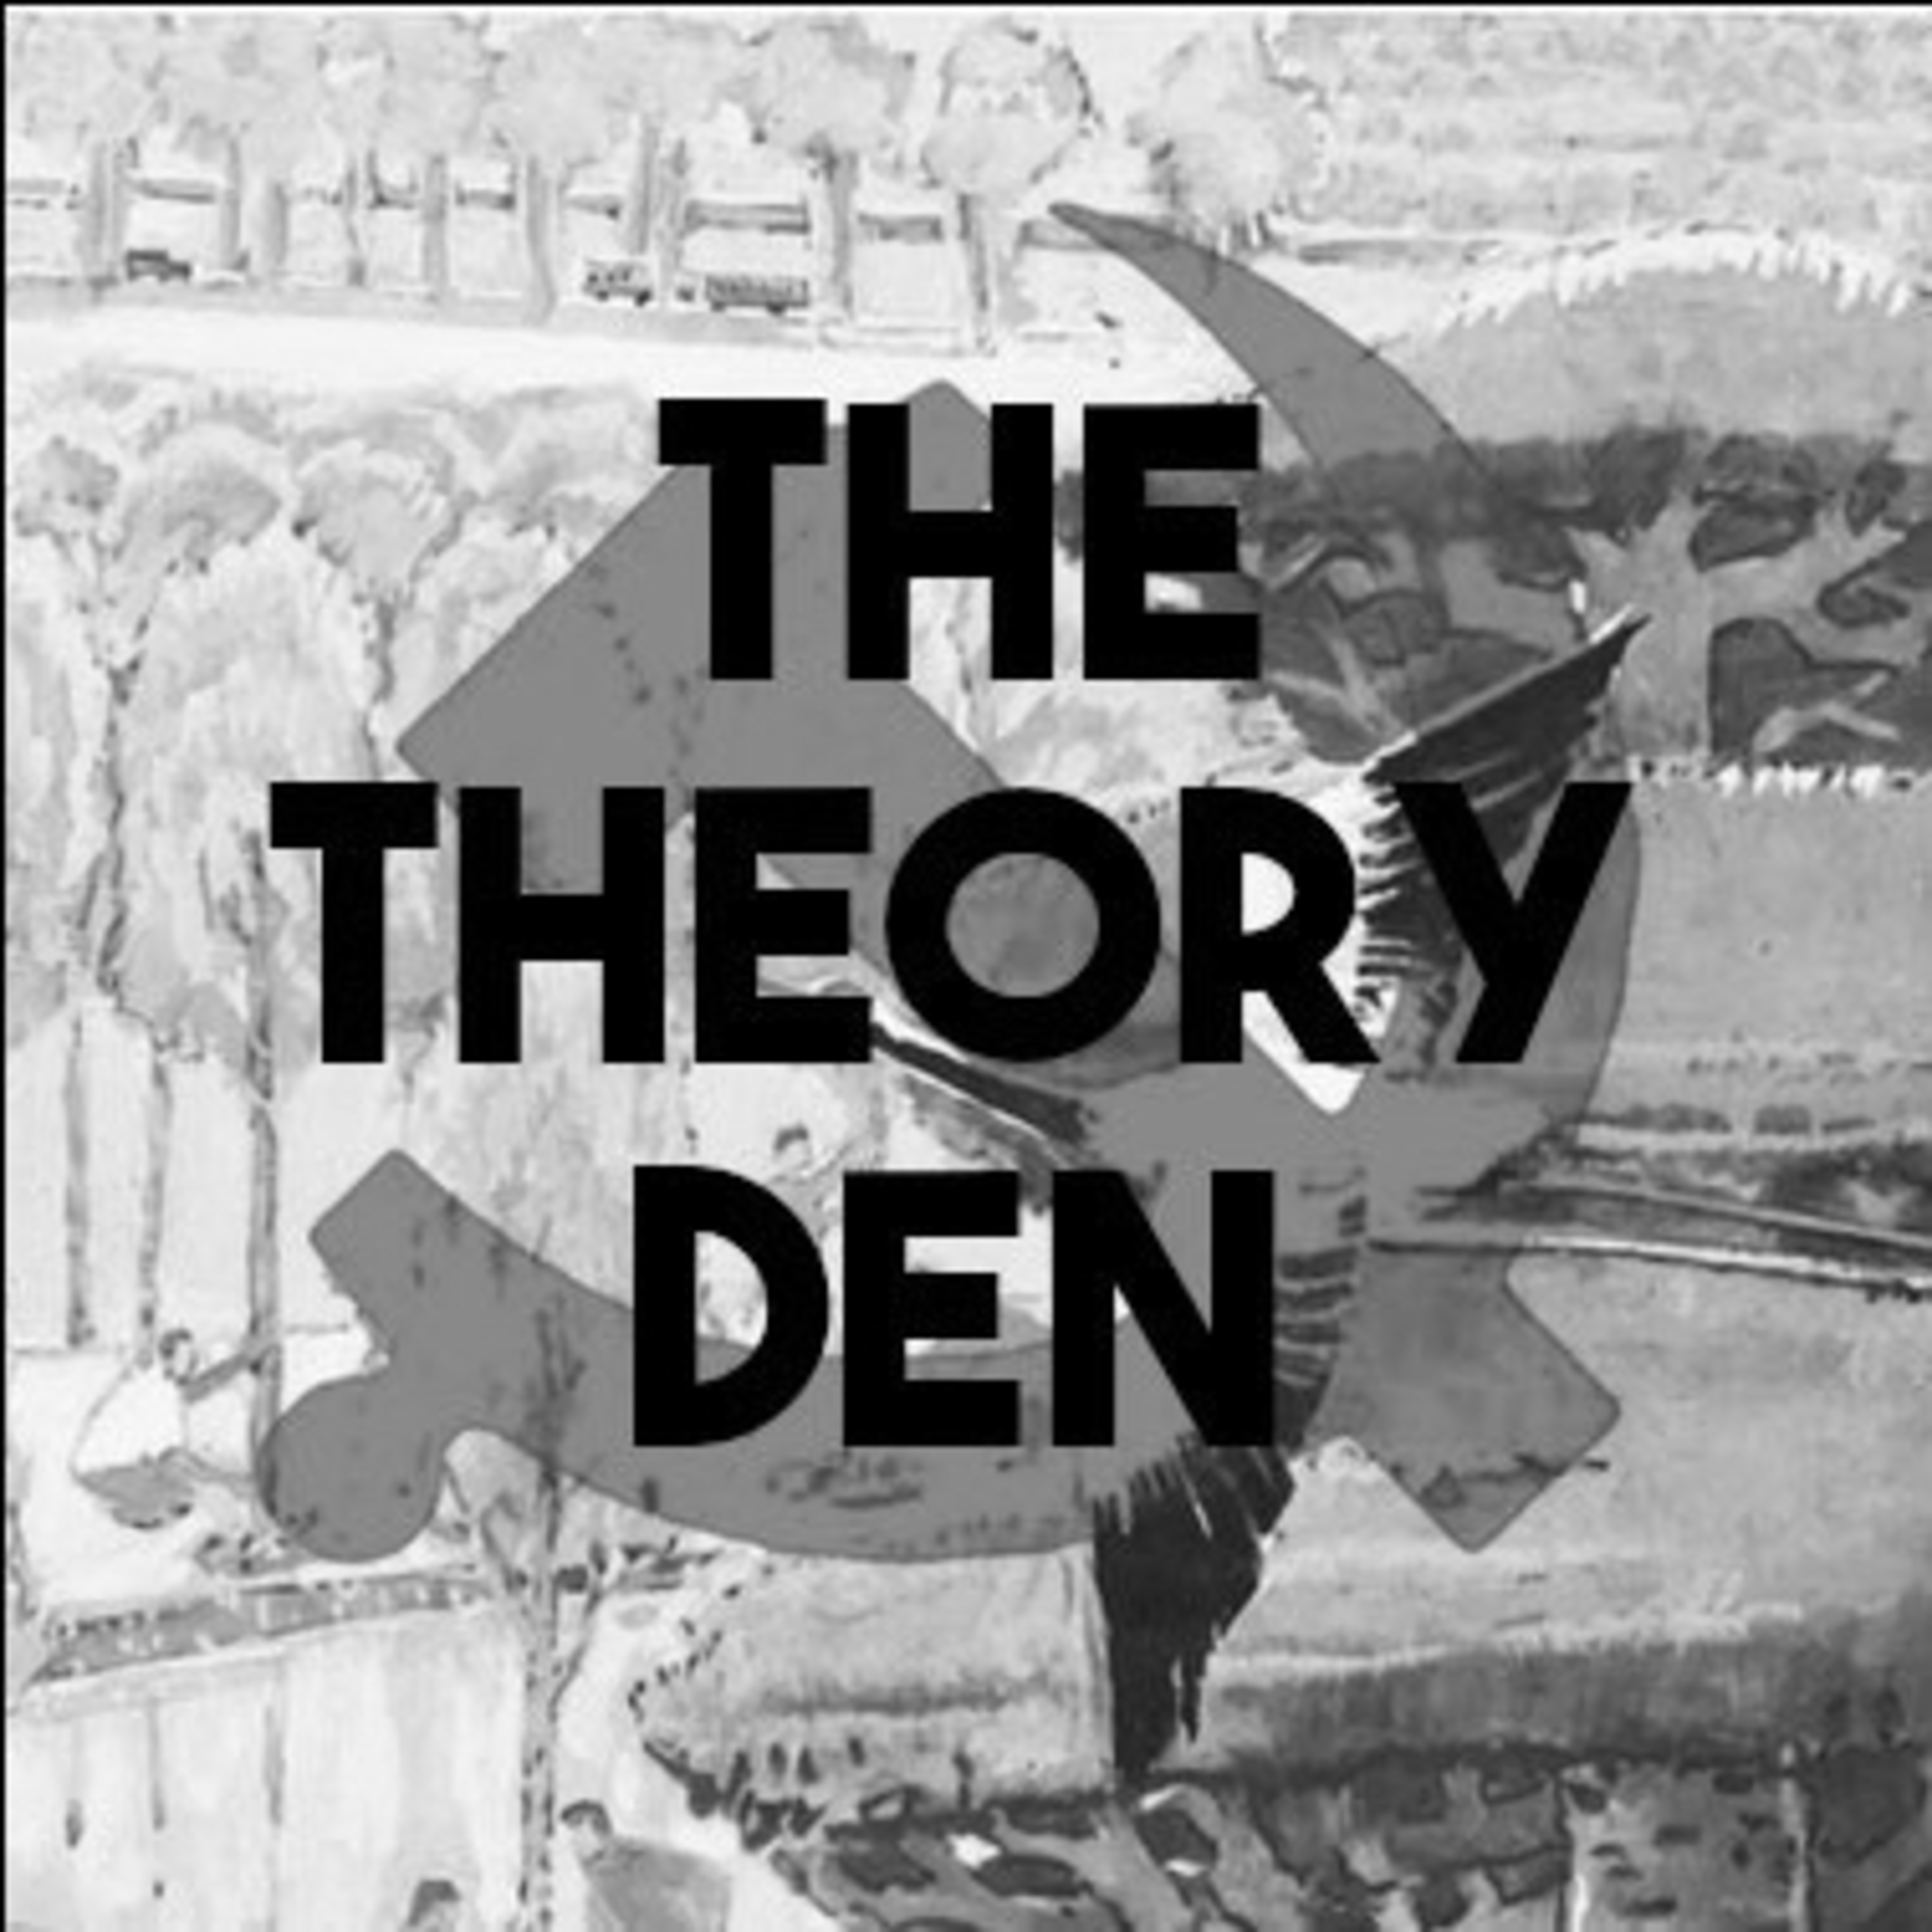 Episode 1: Intro to the Theory Den